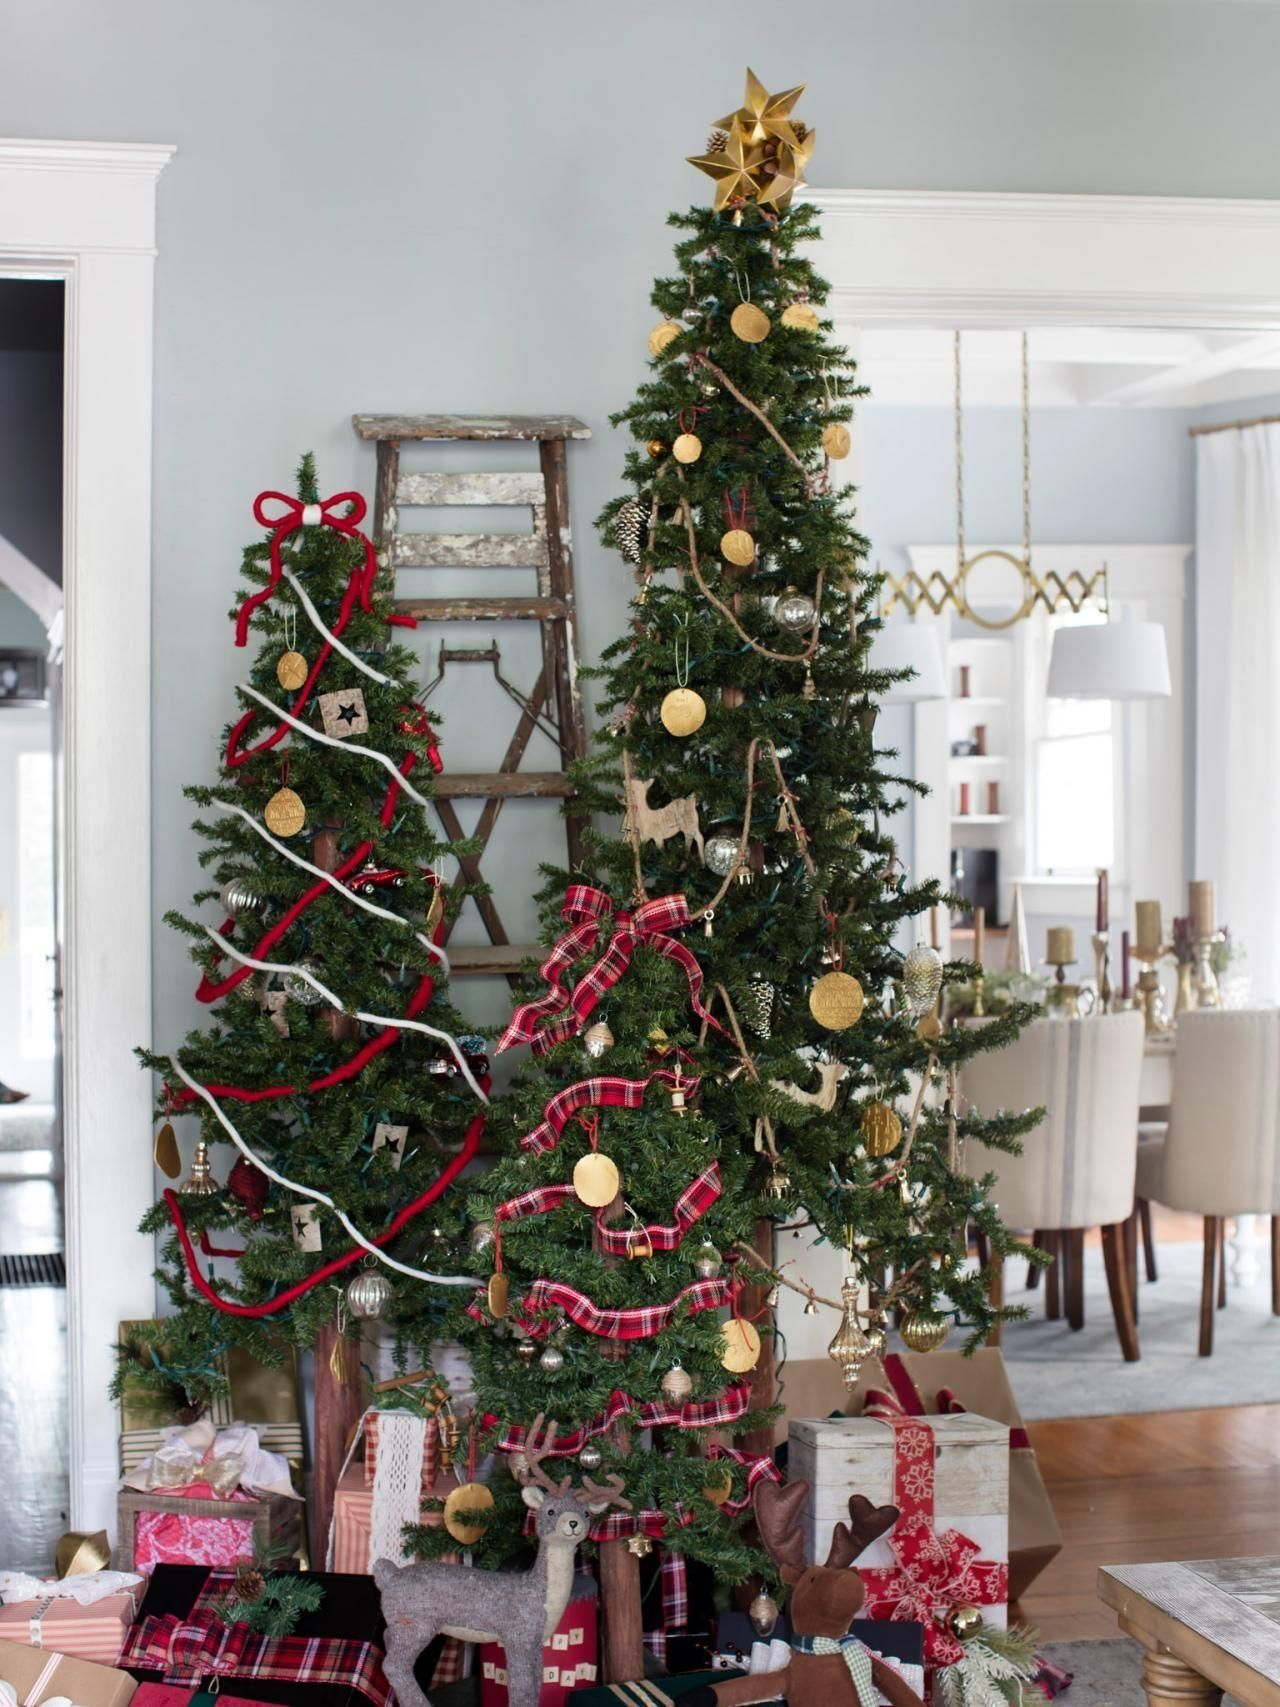 31 Christmas Tree Ideas for Living Room with Farmhouse Style